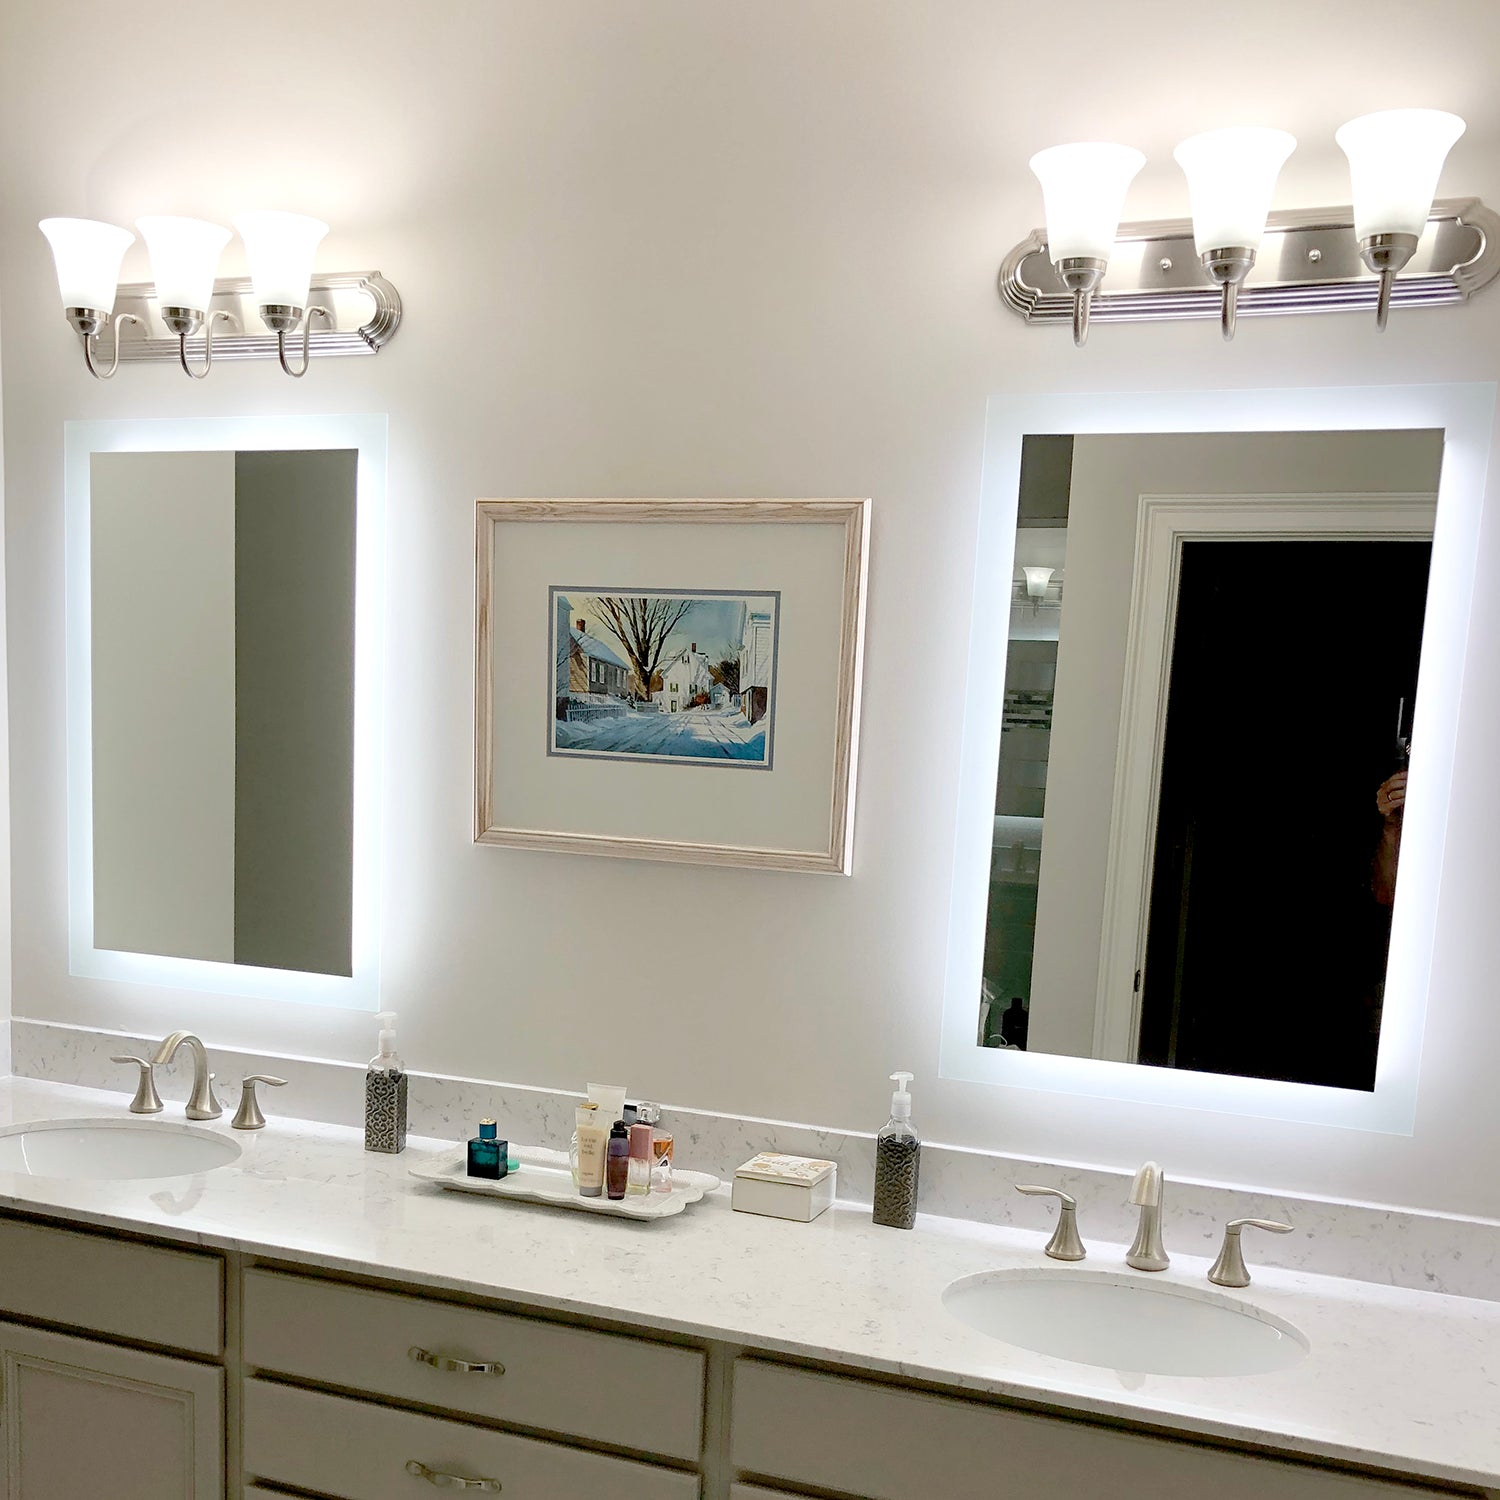 "Side-Lighted LED Bathroom Vanity Mirror: 20"" x 28 ..."